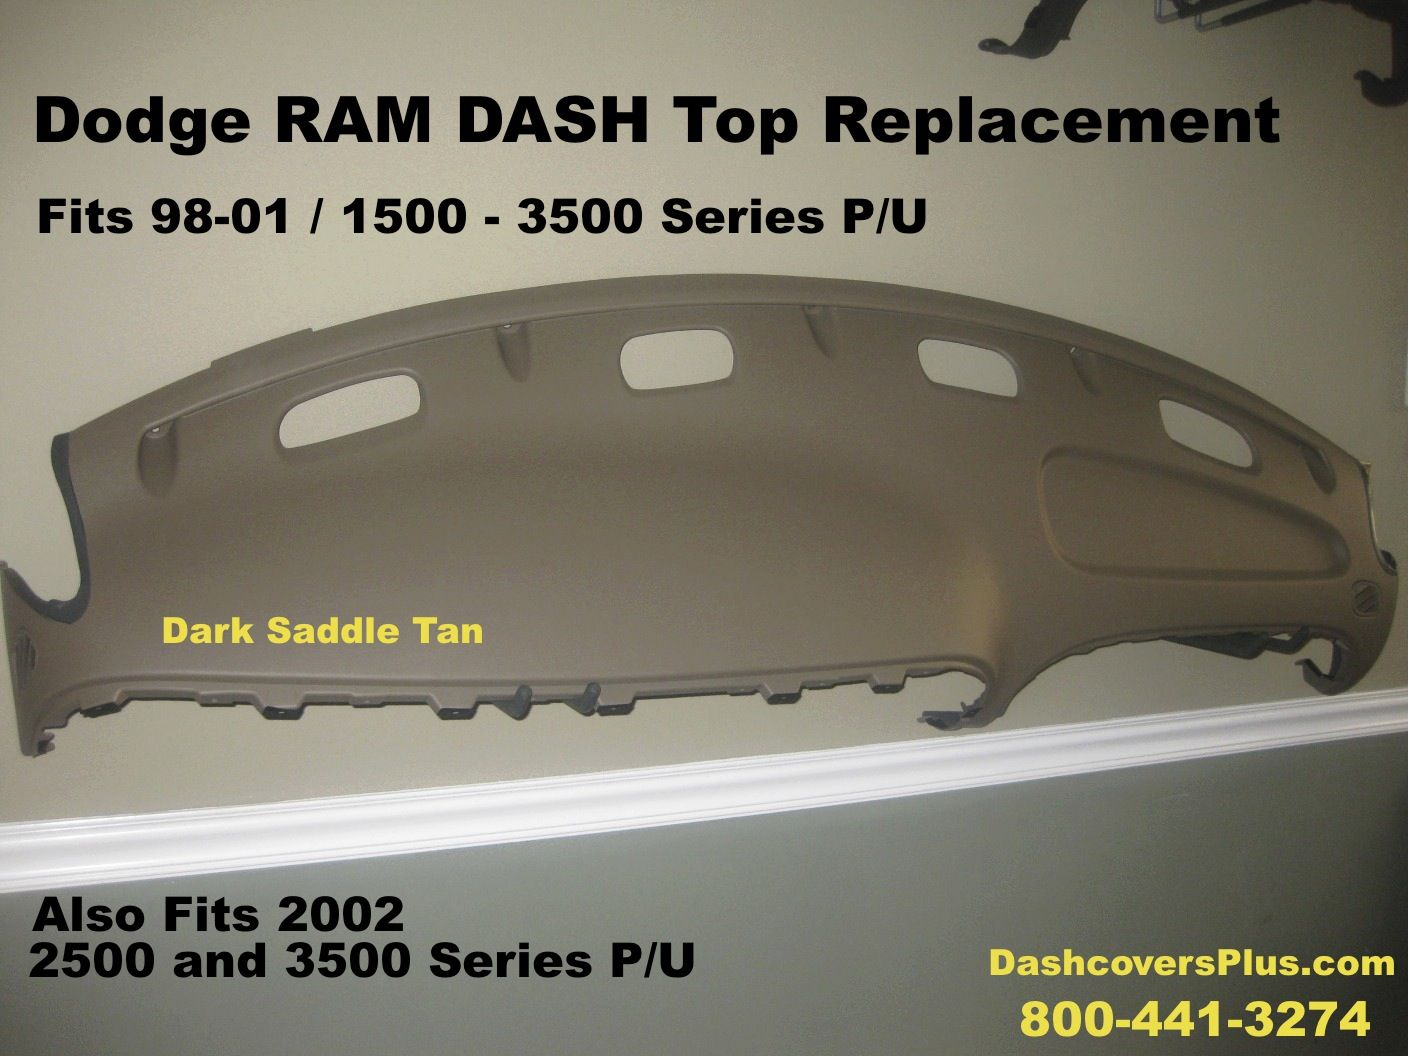 Replace That Ed Or Missing 98 02 Dodge Ram Dash Board Call Danny 800